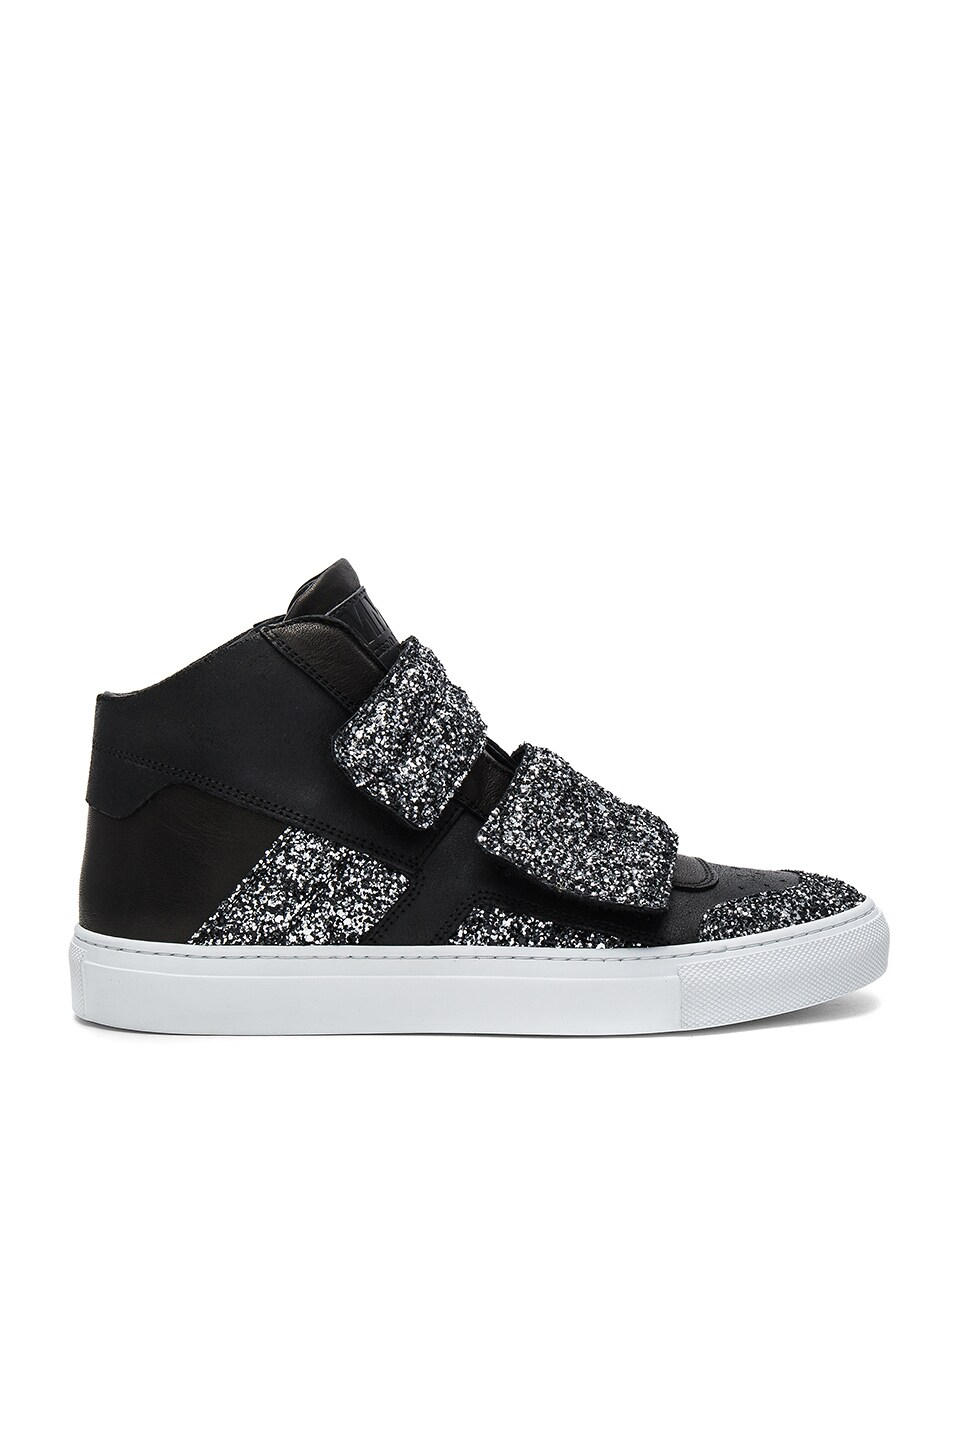 MM6 Maison Margiela Hi Top Sneaker in Black & Silver